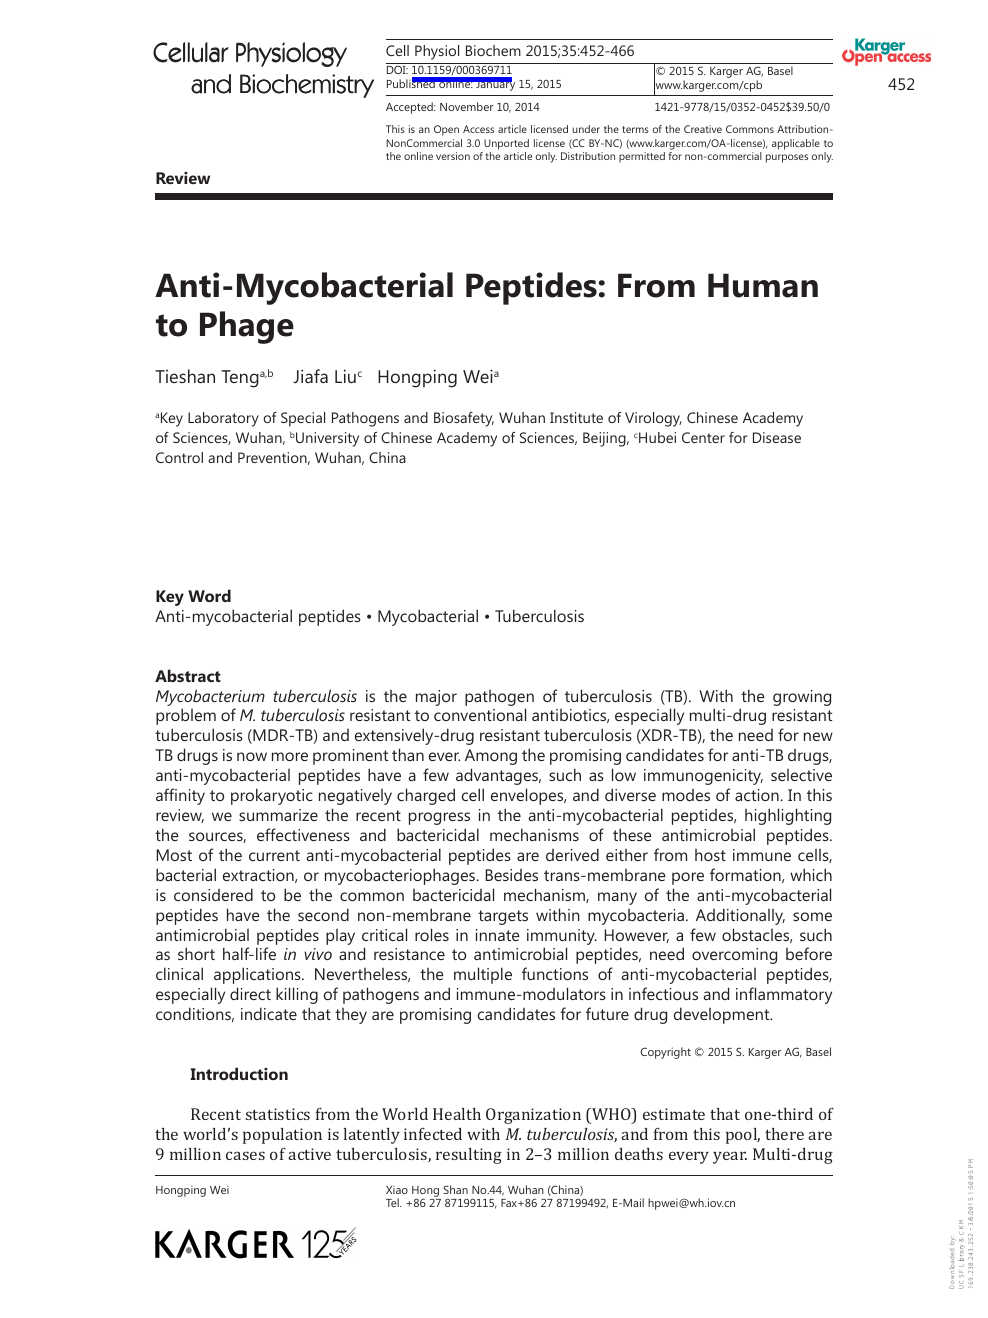 Anti-Mycobacterial Peptides: From Human to Phage – topic of research